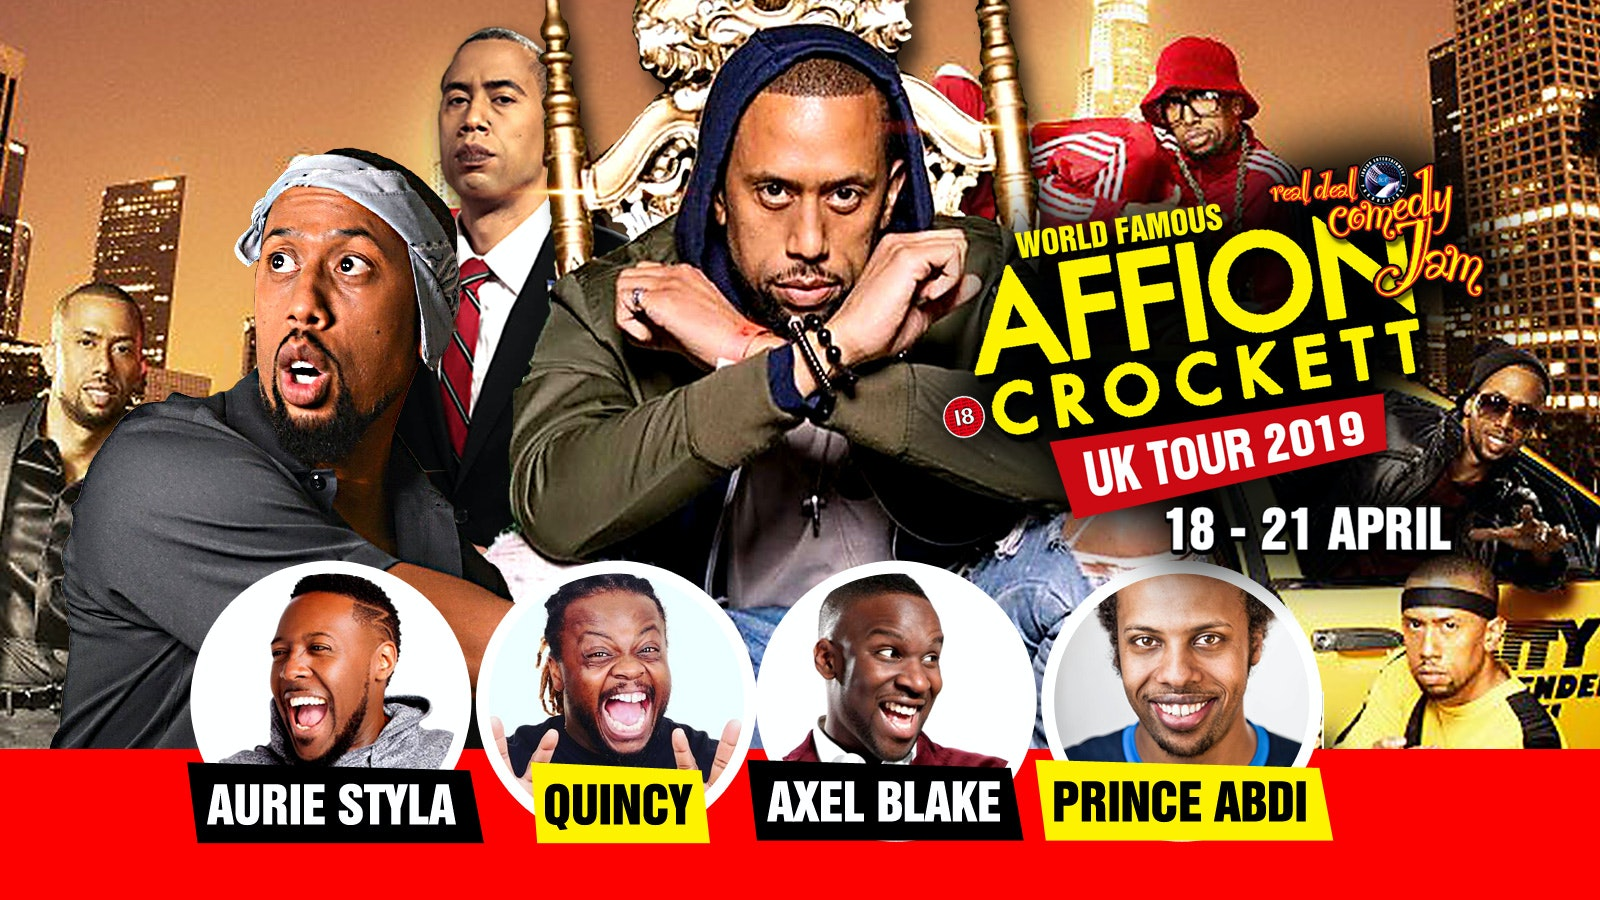 Birmingham – Real Deal Comedy Jam Easter starring Affion Crockett